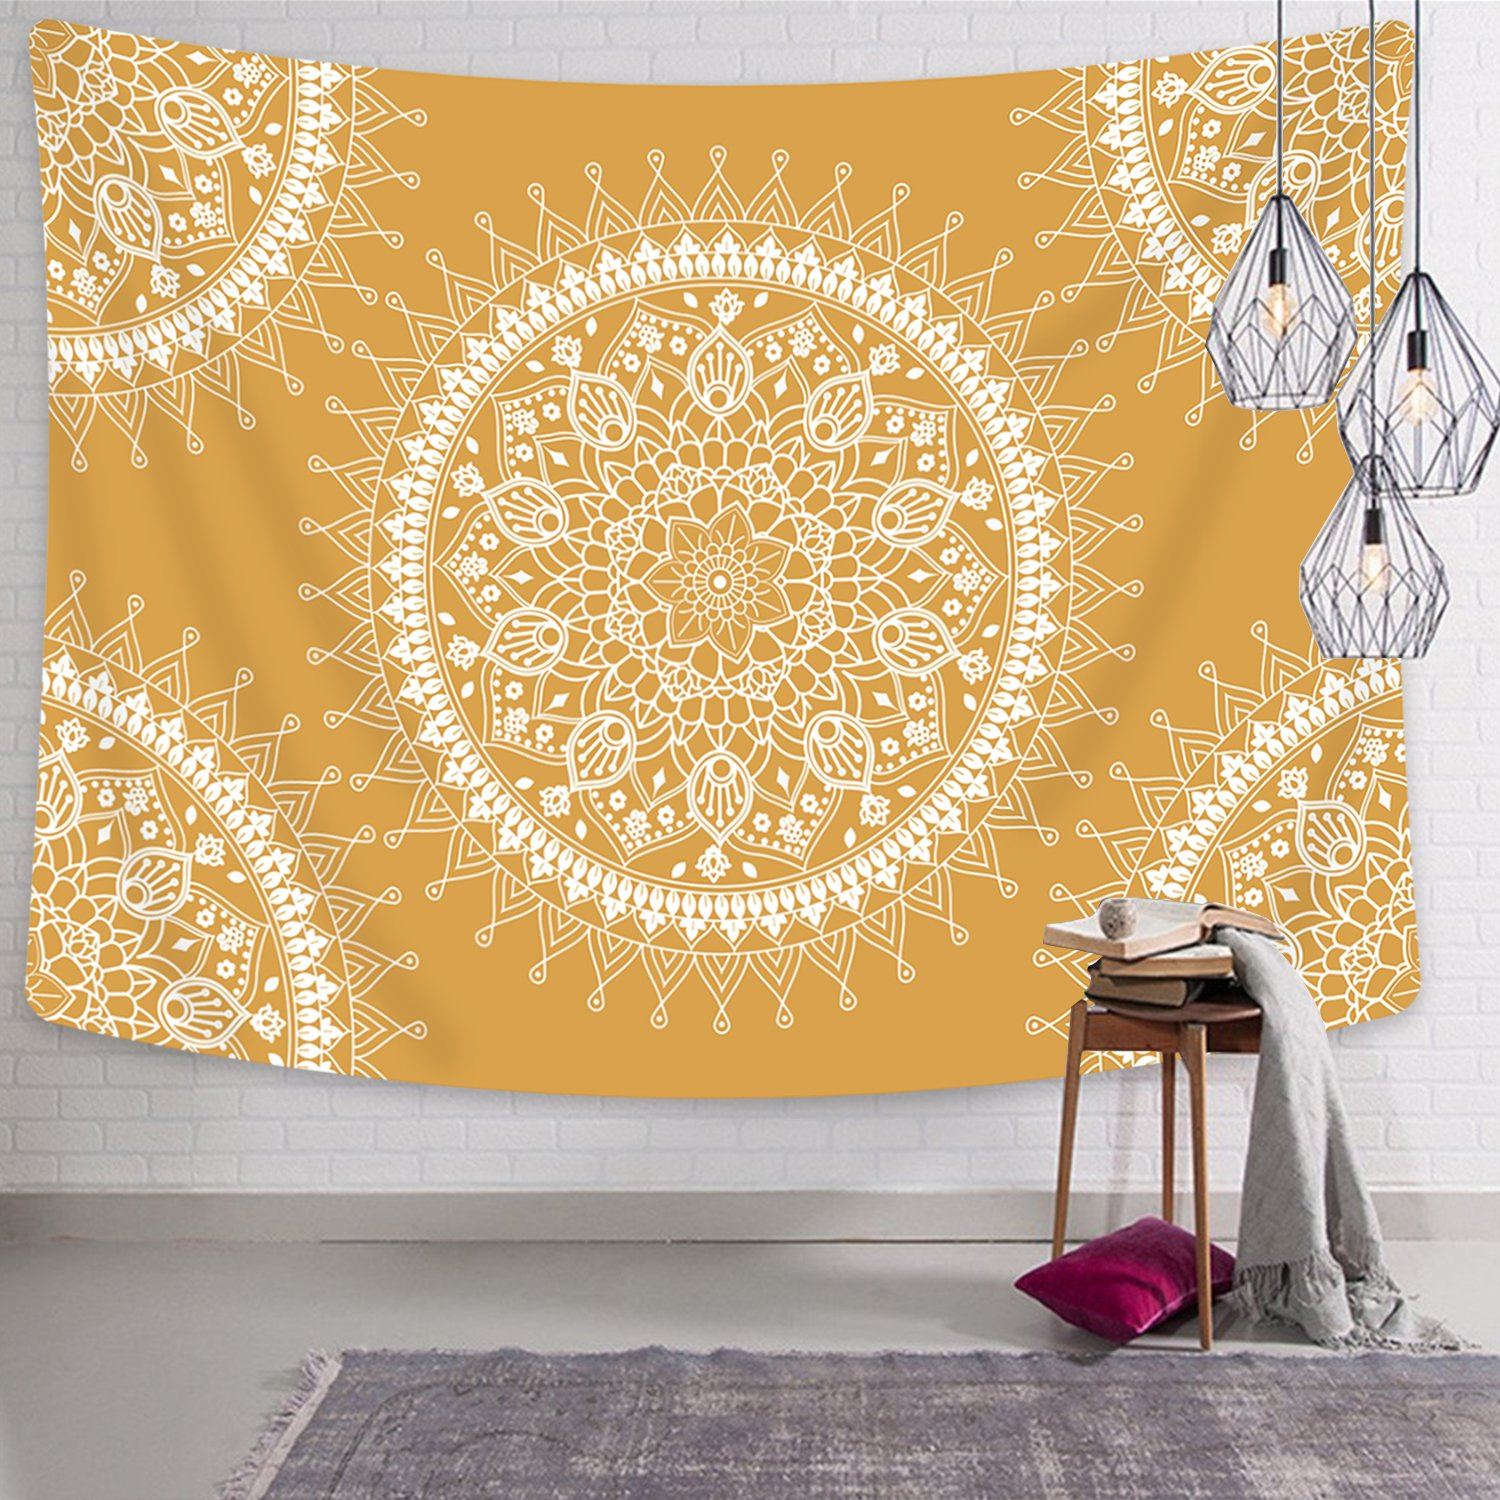 Tapestry Wall Hanging Tapestries Blue Star Hippie Tapestry Hippy Mandala Bohemian Tapestries Indian Dorm Decor Psychedelic Tapestry Wall Hanging Ethnic Decorative Hippie Tapestry BLEUM CADE